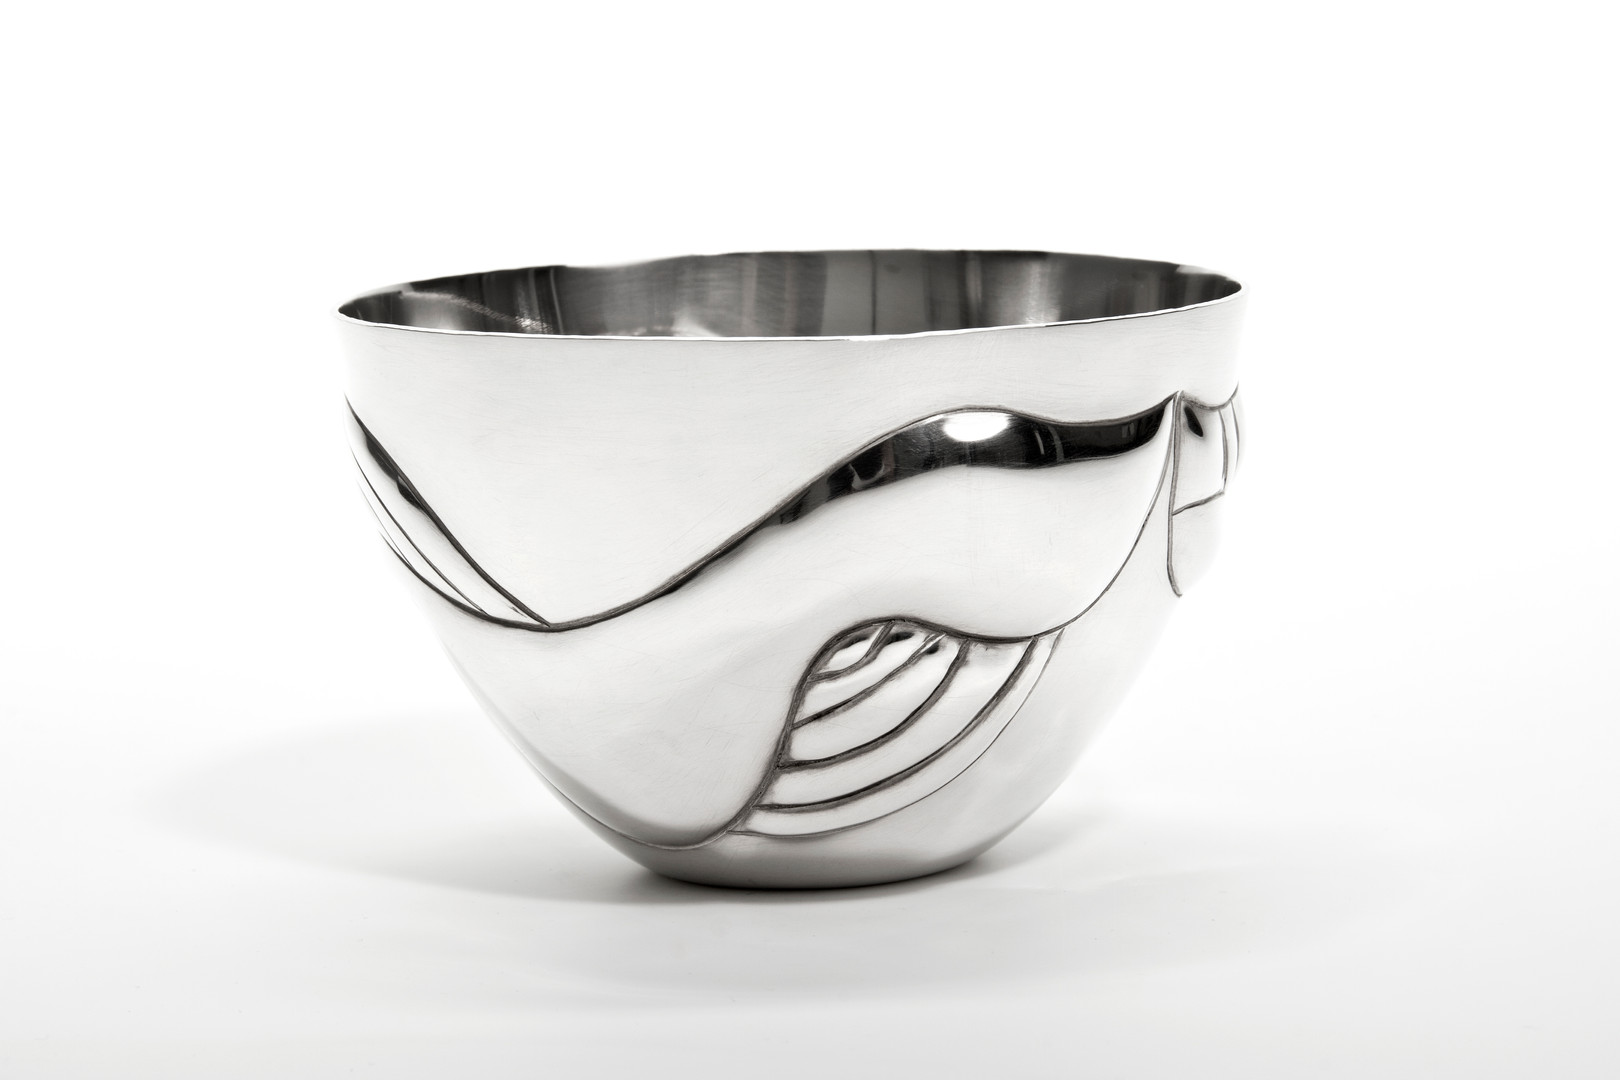 Hand Formed Sterling Silver Bowl, 2018